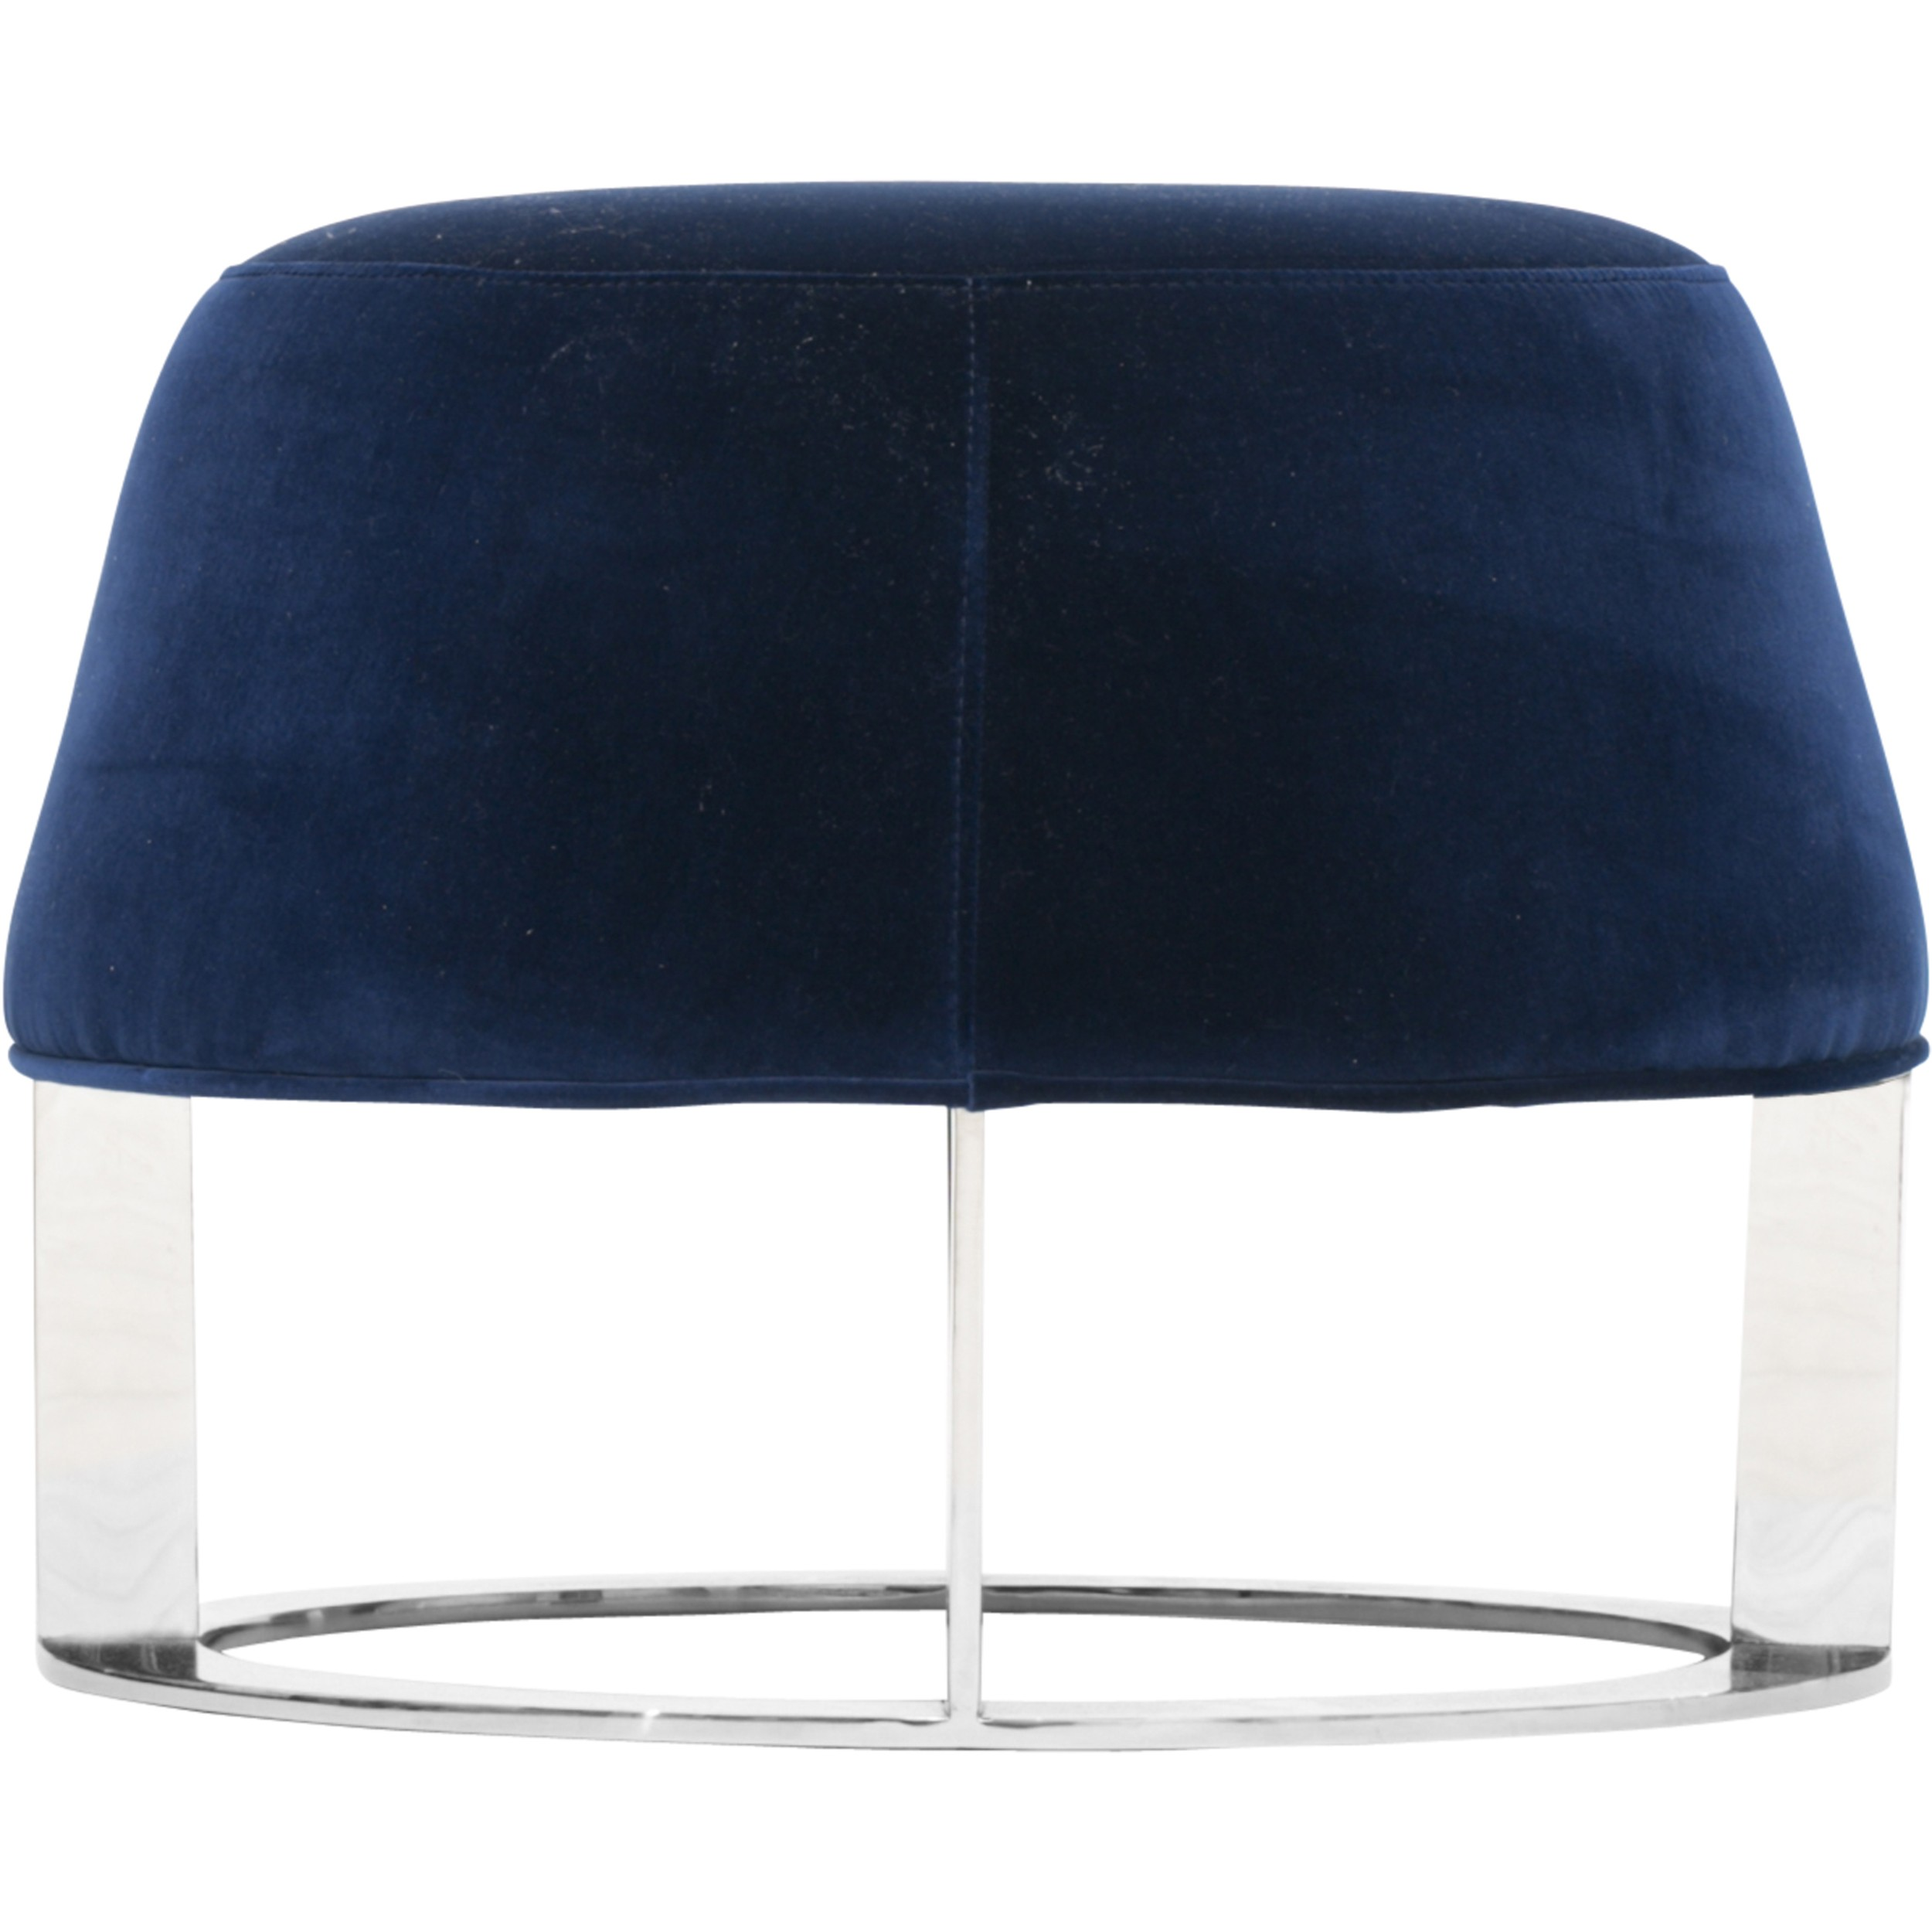 cavo small ott giotto blue cocktail accent tables table furniture dale tiffany desk lamp concrete outdoor bunnings glass coffee and side mid century modern dining chairs